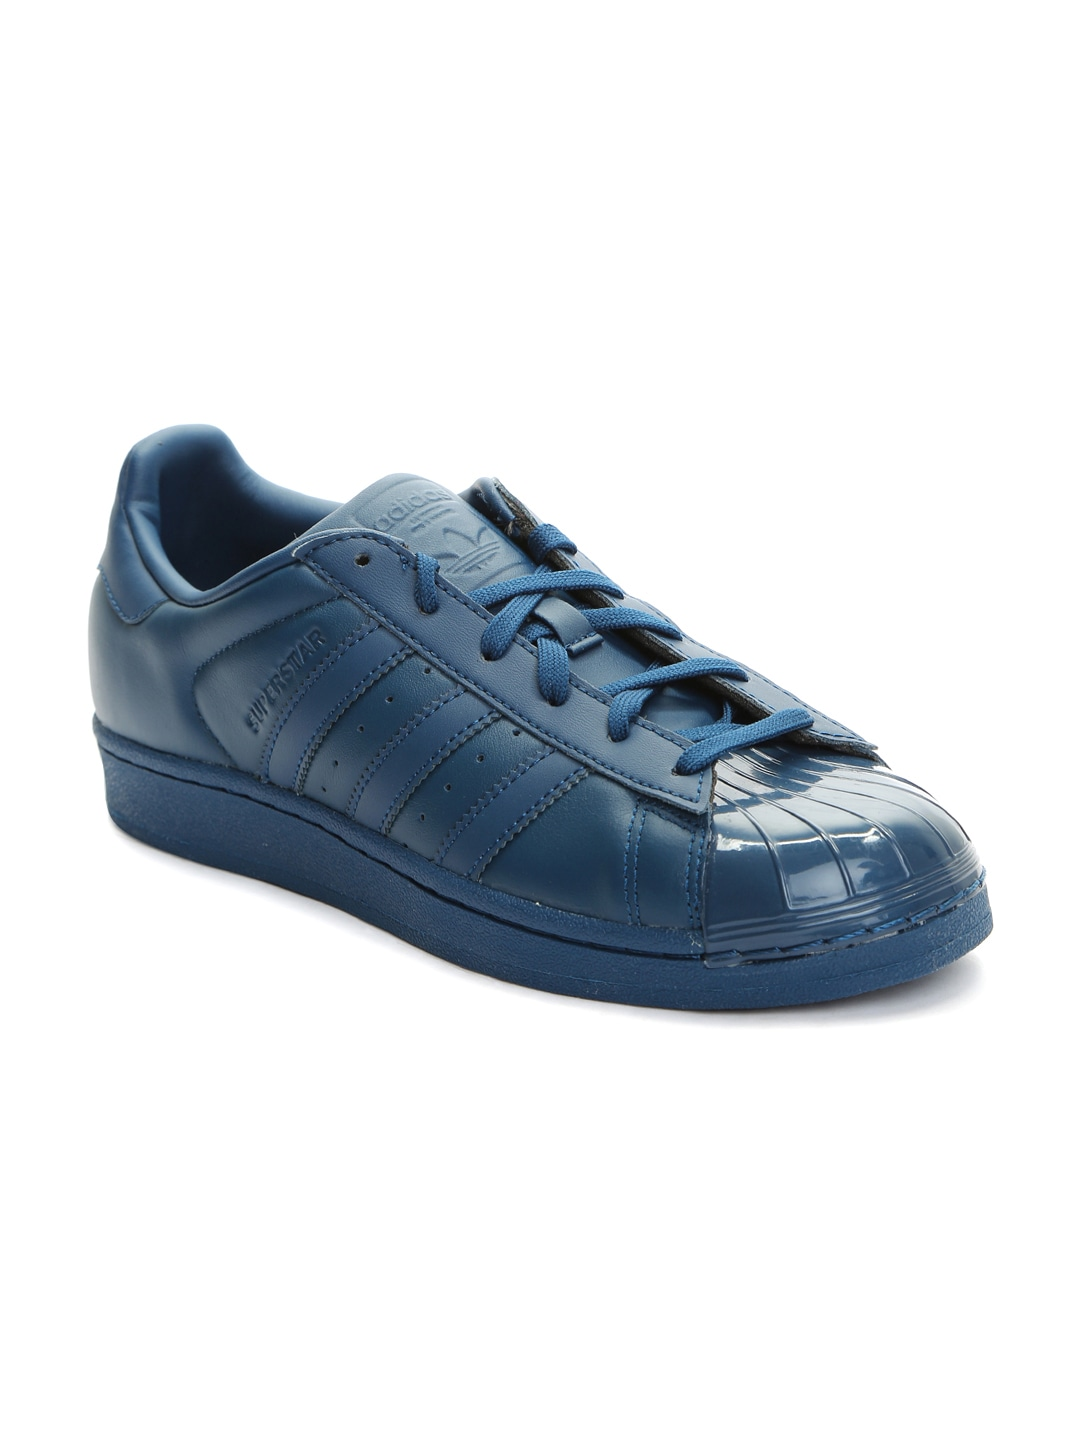 ... new style adidas superstar online shop e9a2d 3d3ba 0ab2ae8f128